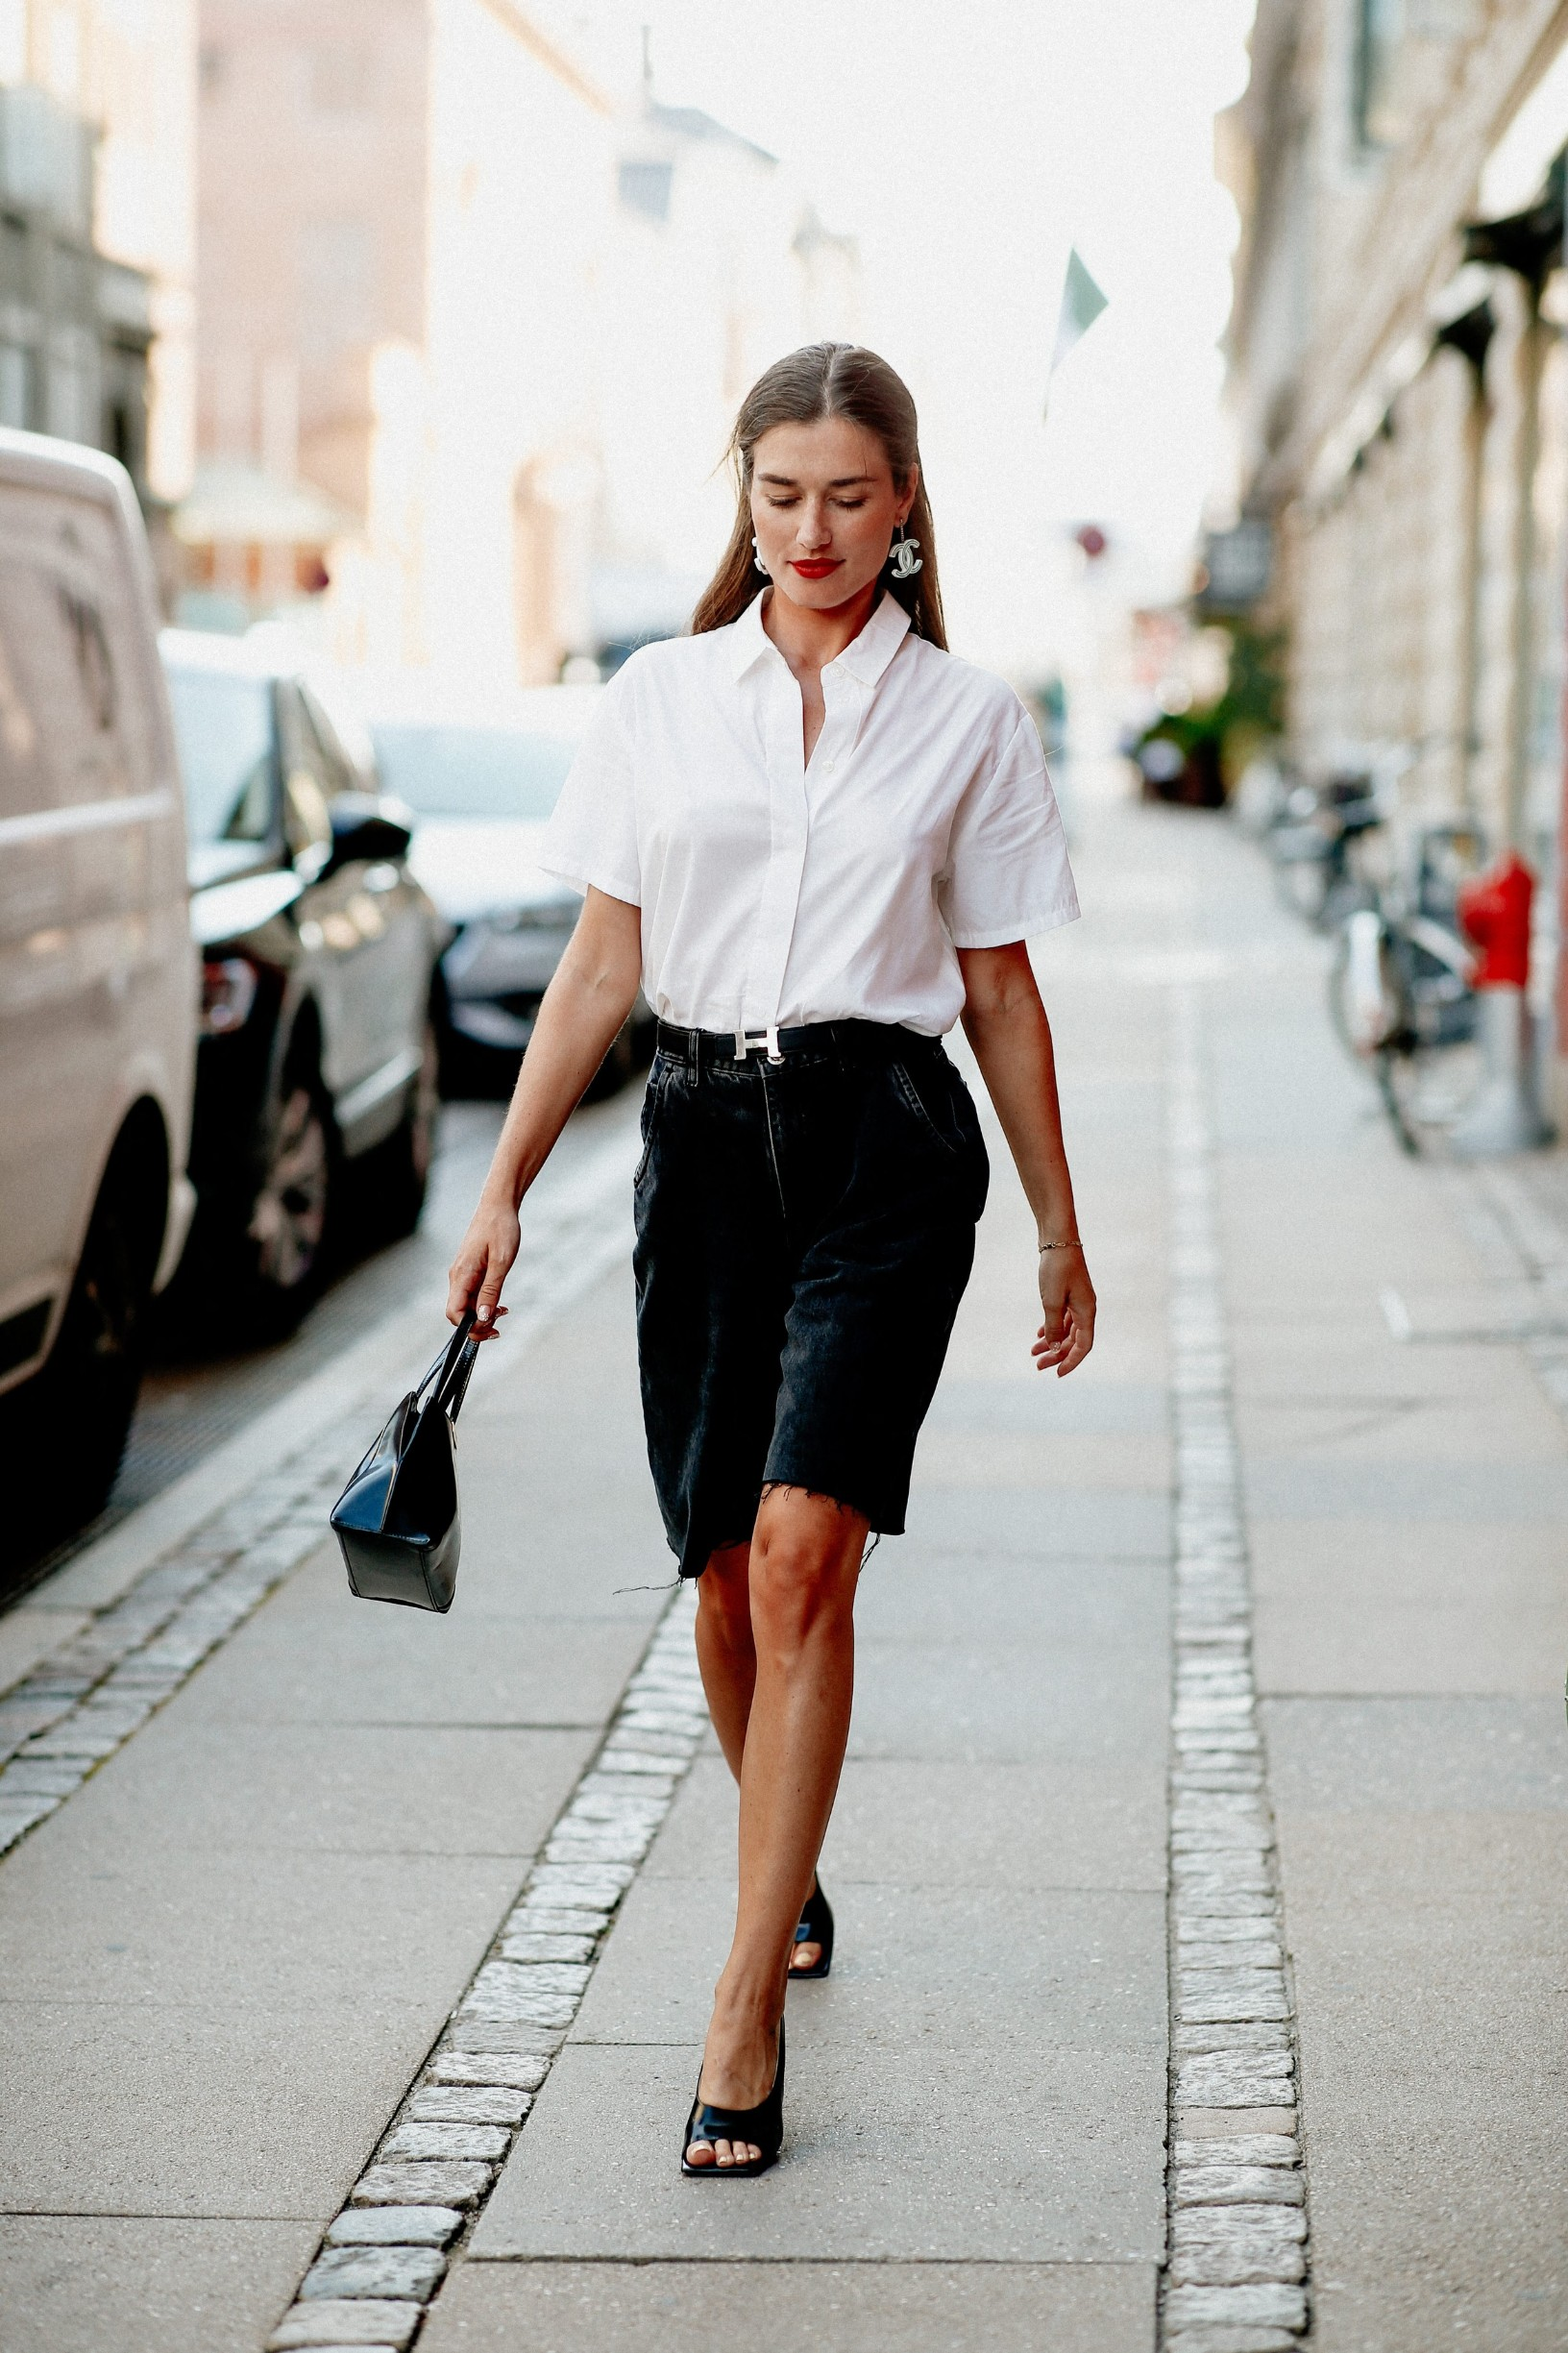 Street style, Ilirida Krasniqi arriving at Selected Spring Summer 2021 show, held at Bredgade, Copenhagen, Denmark, on August 12, 2020.,Image: 554929995, License: Rights-managed, Restrictions: , Model Release: no, Credit line: Bertrand-Hillion Marie-Paola/ABACA / Abaca Press / Profimedia